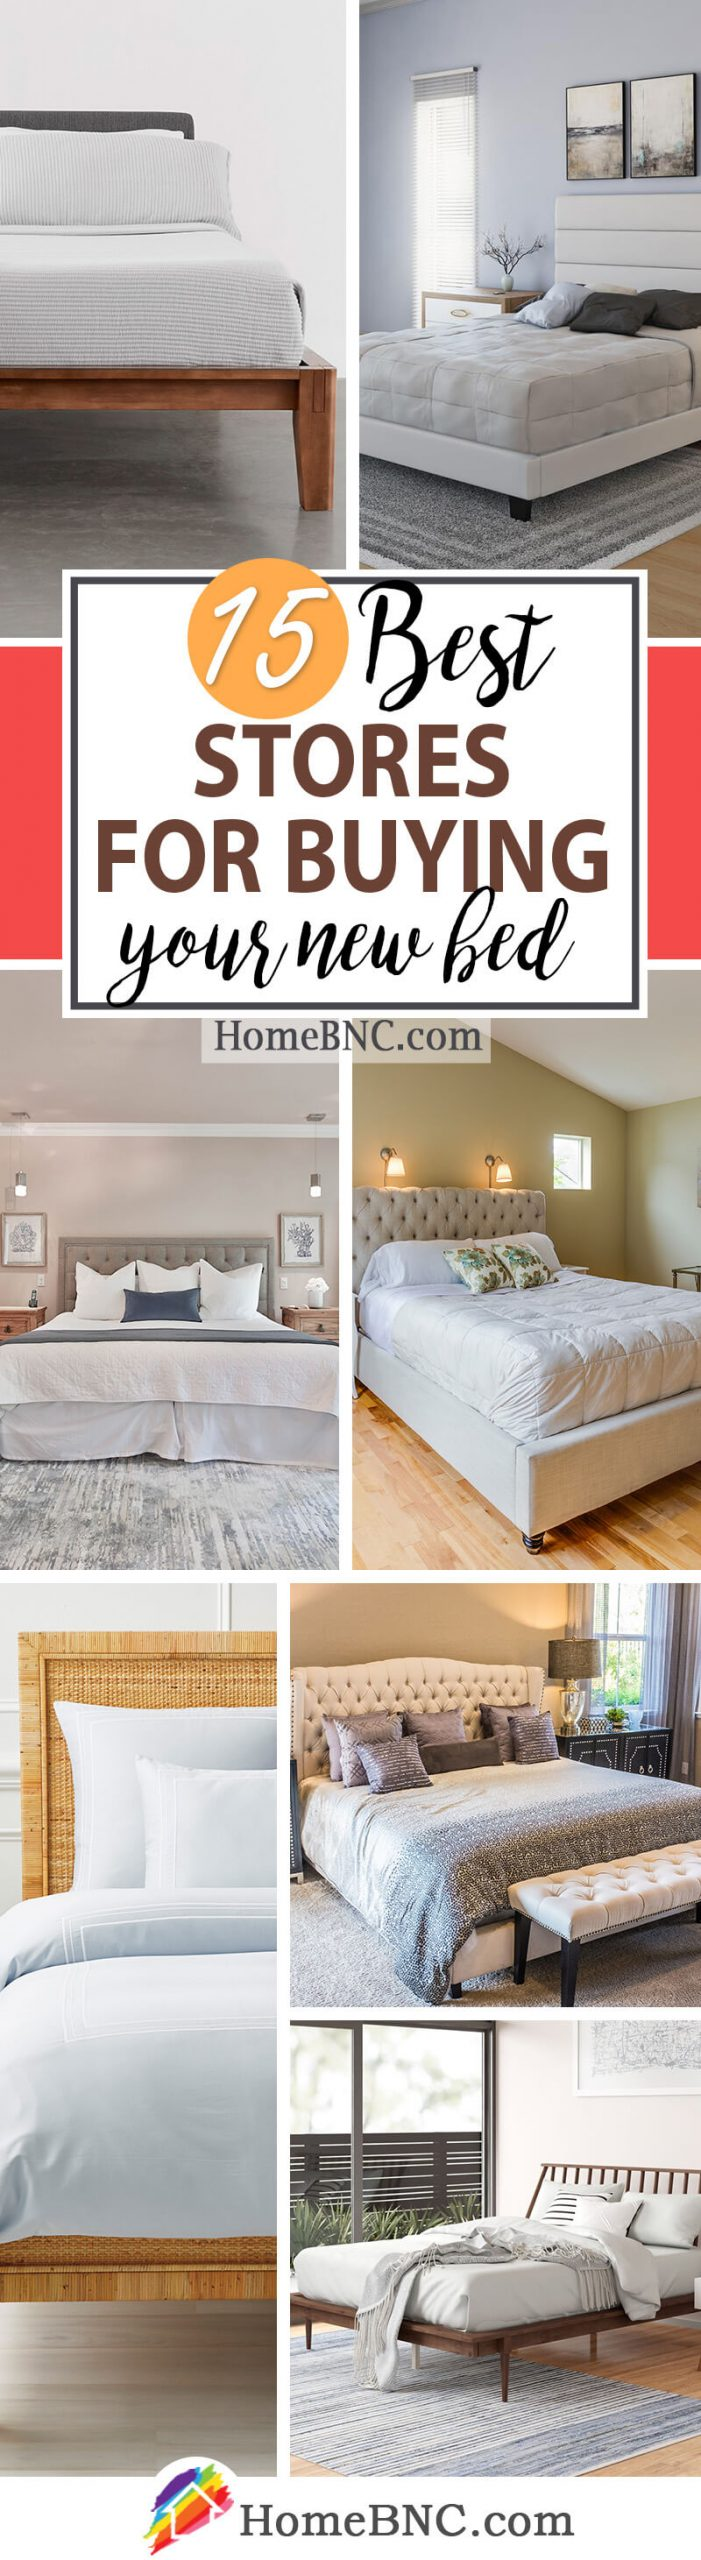 Best Places to Buy Beds